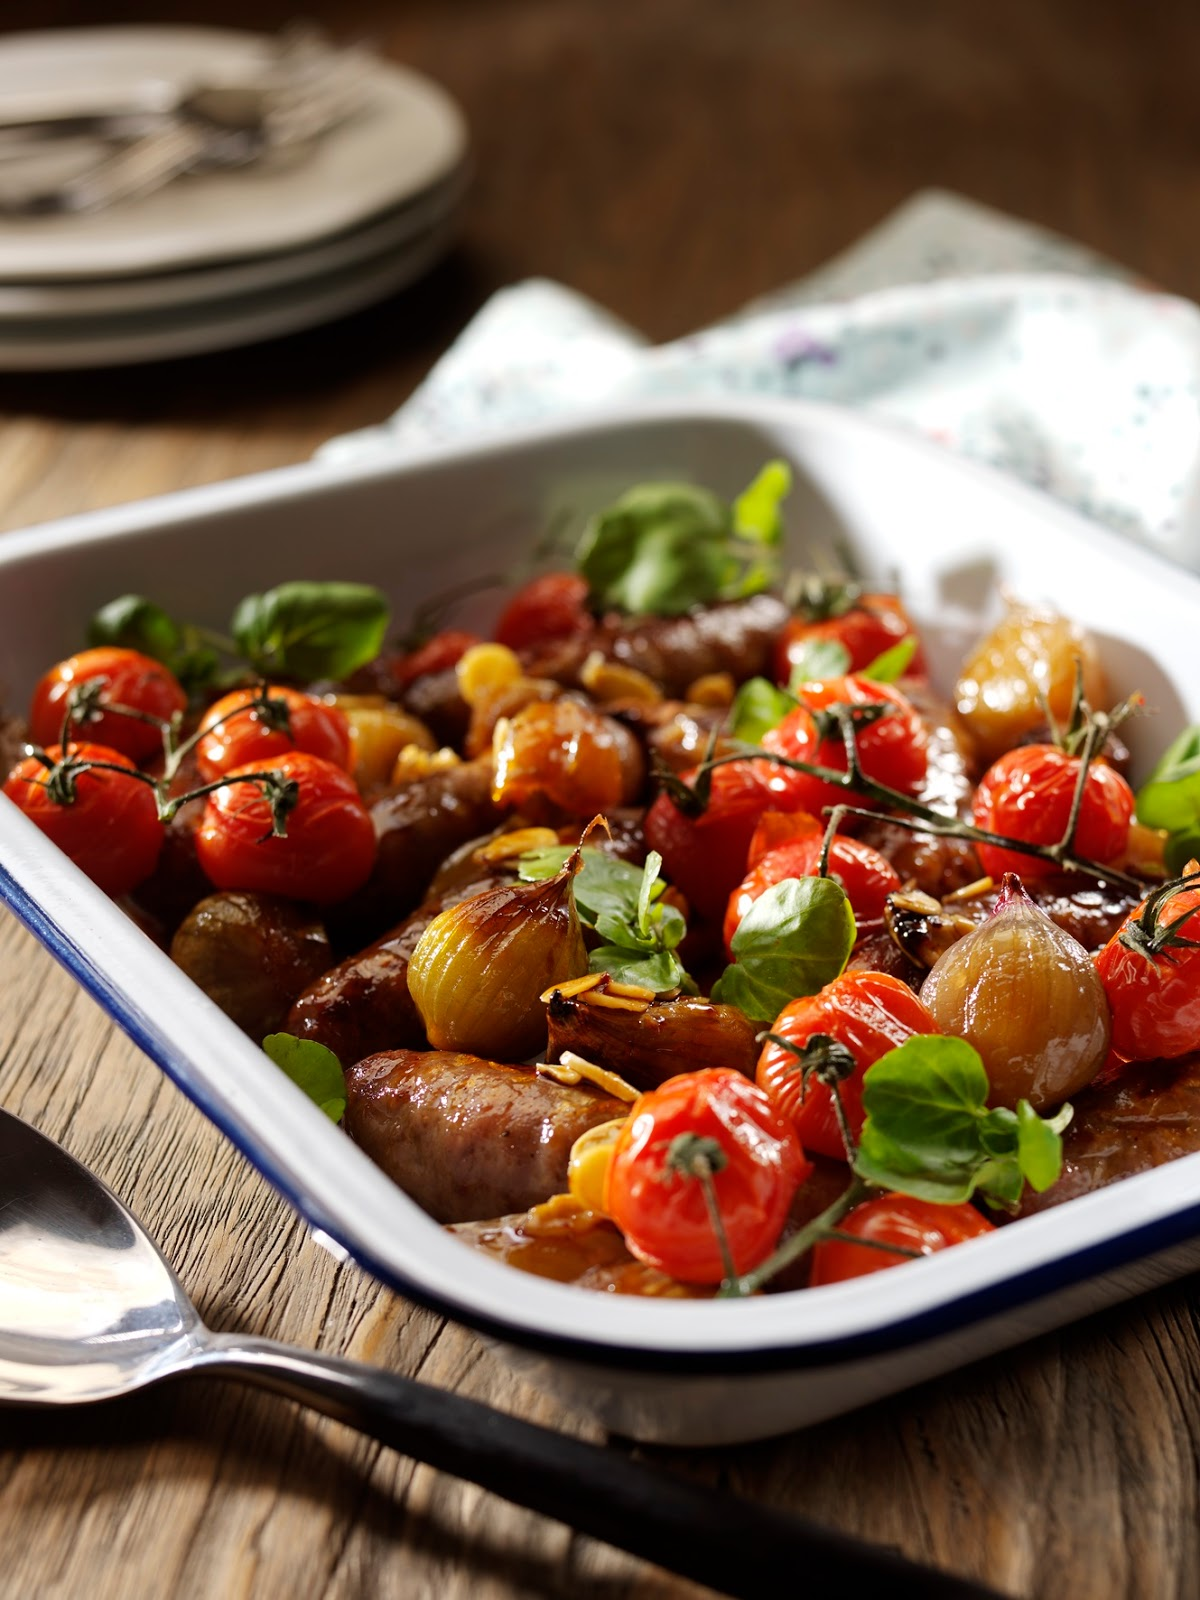 How To Make Honey And Soy Glazed Roasted Shallots And Sausages